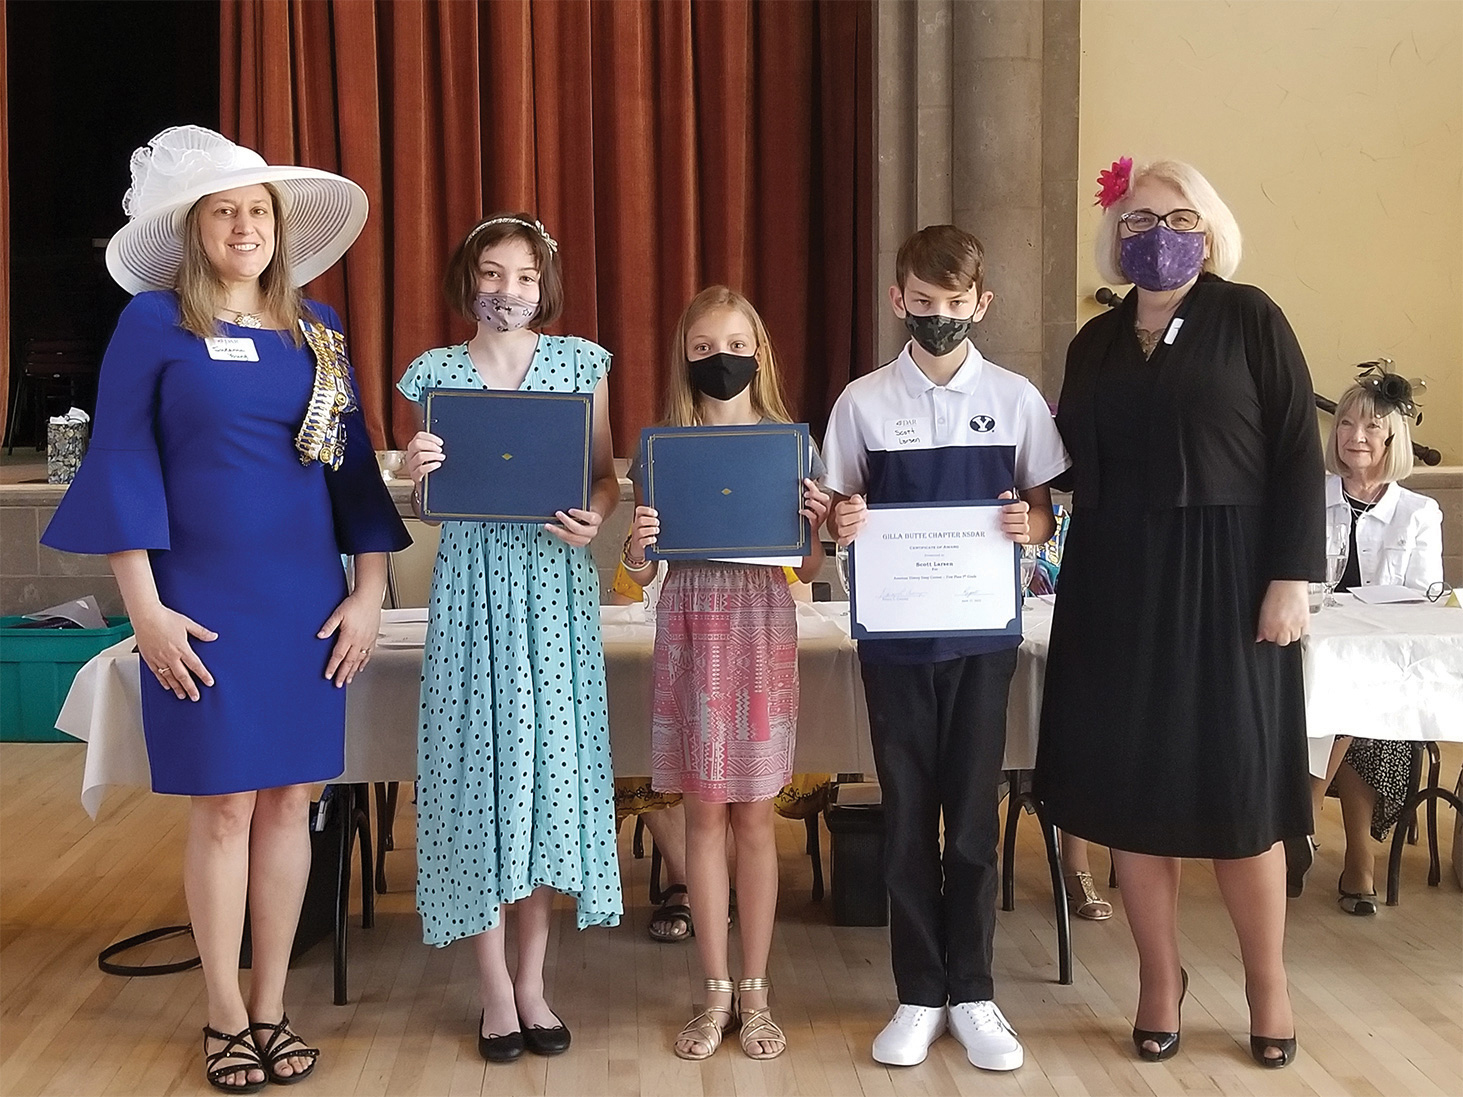 Voyage of the Mayflower Essay Contest winners: Elly Proctor, Alyssa Larsen, and Scott Larsen, flanked by Suzanne Young (left) and Tina Bakalis (right)